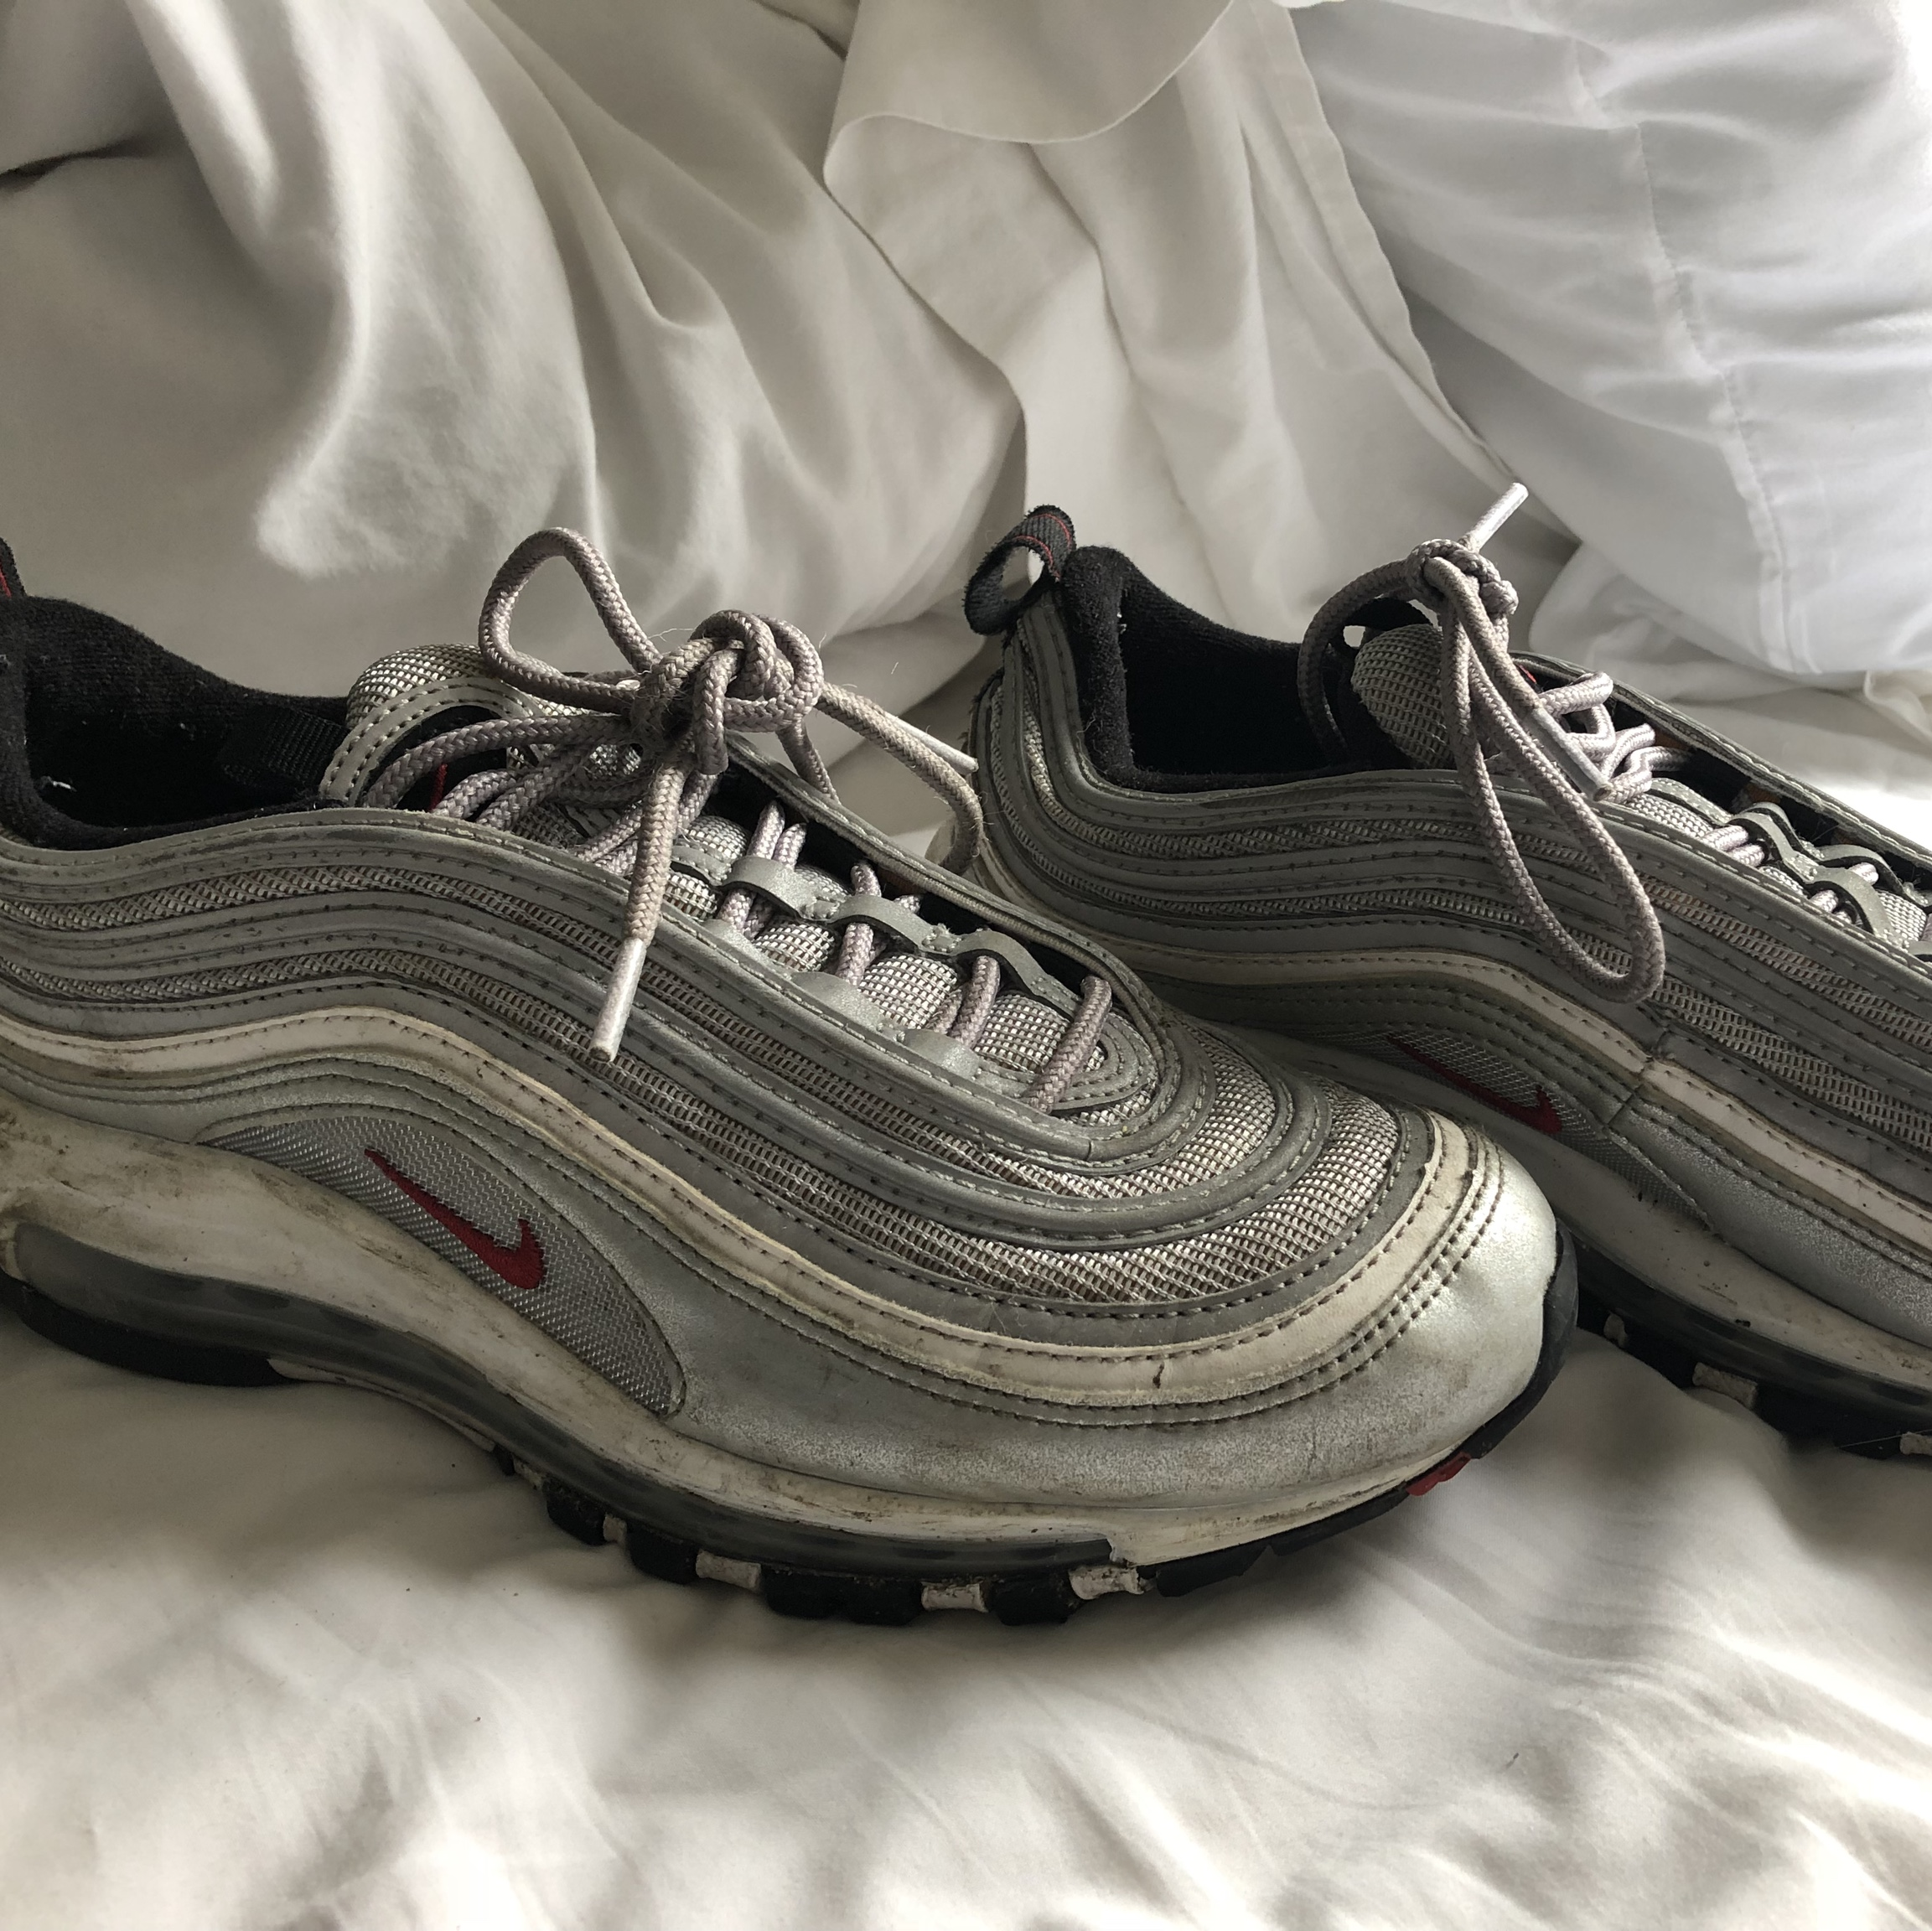 Nike silver 97s , muddy but almost